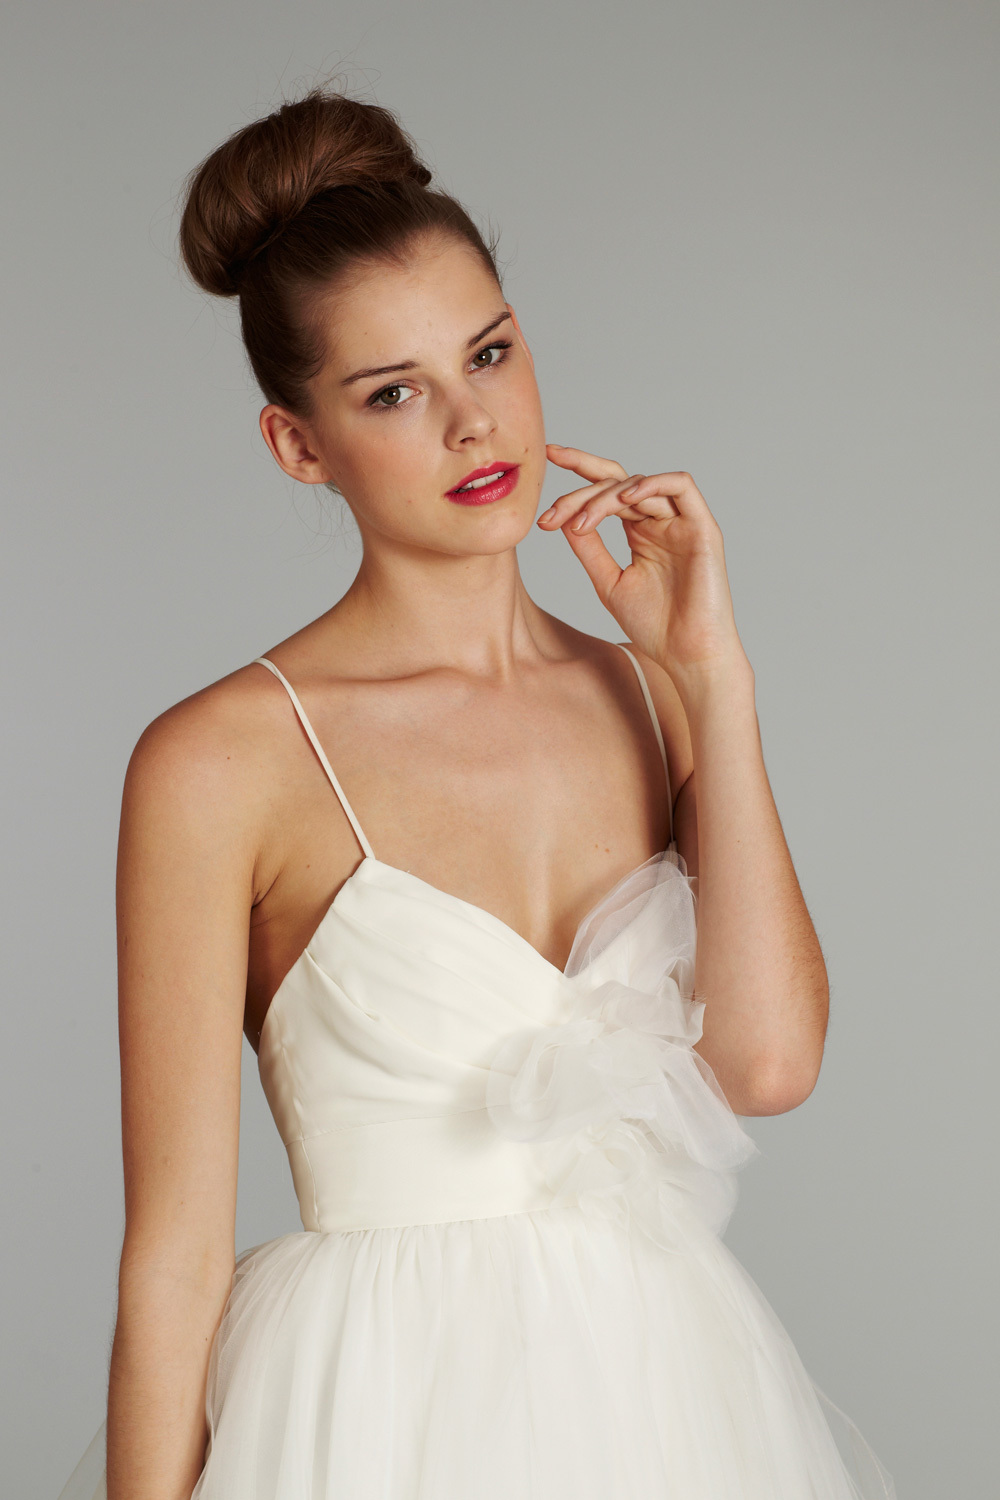 Bridal-gown-wedding-dress-jlm-hayley-paige-blush-fall-2012-lilac-white-detail.full